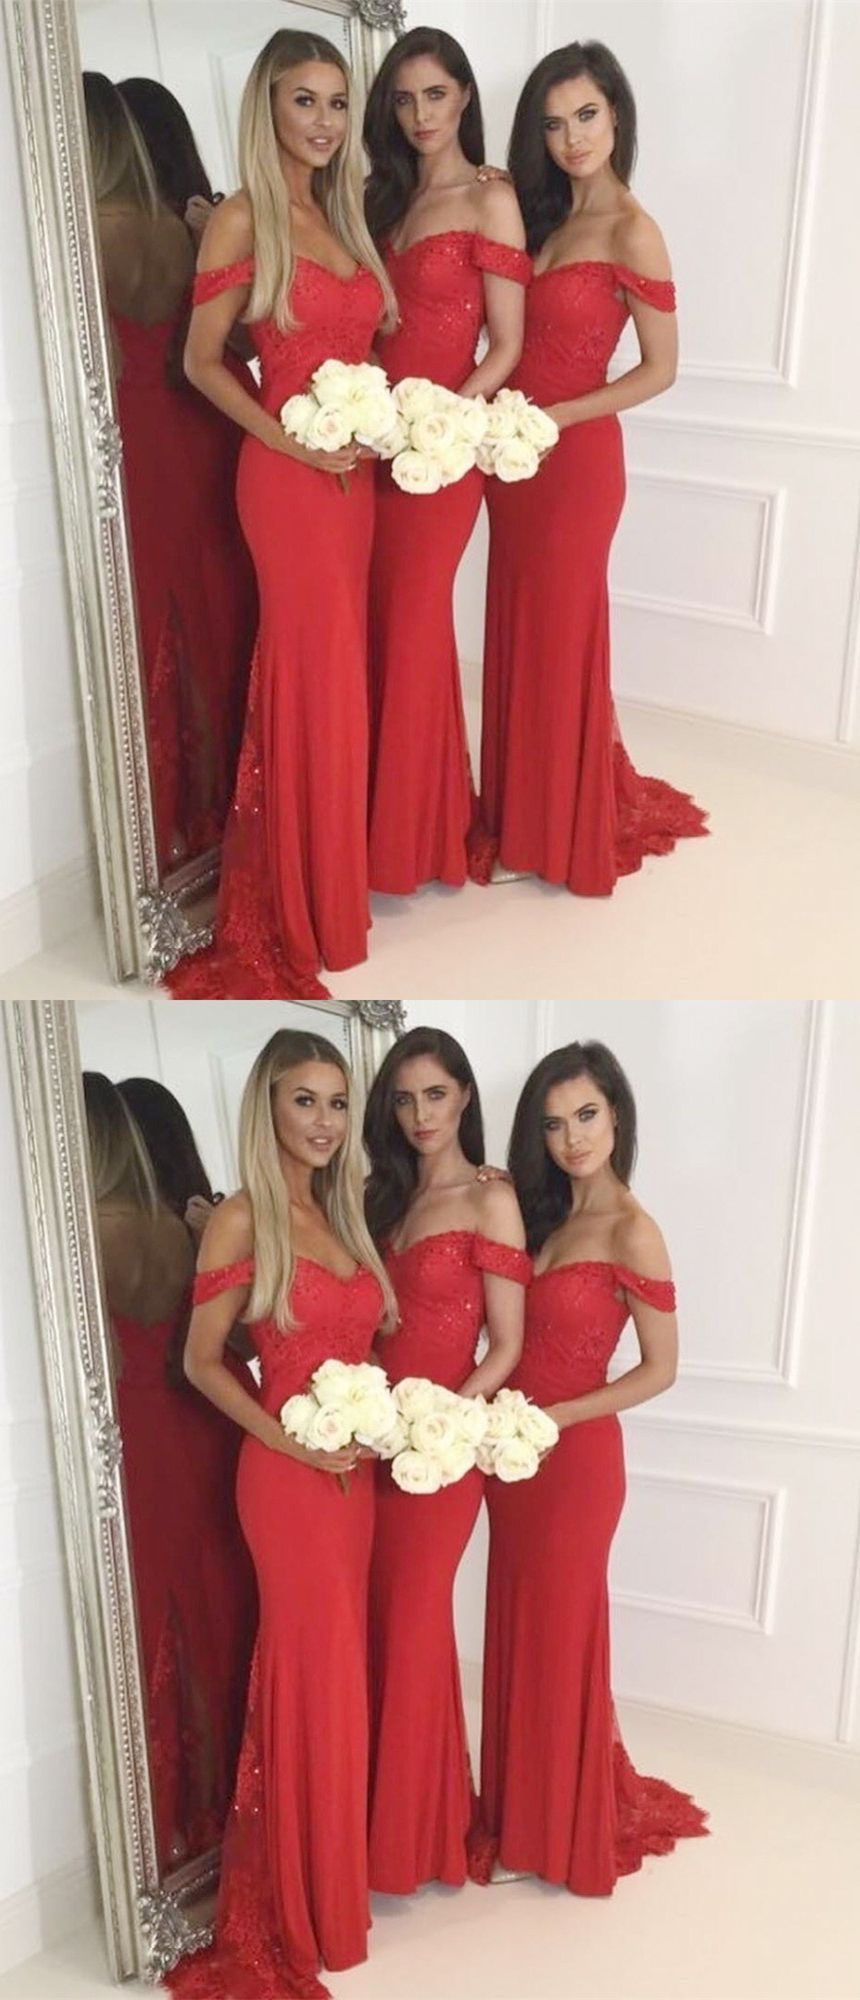 Chic mermaid bridesmaid dresses red off shoulder wedding party